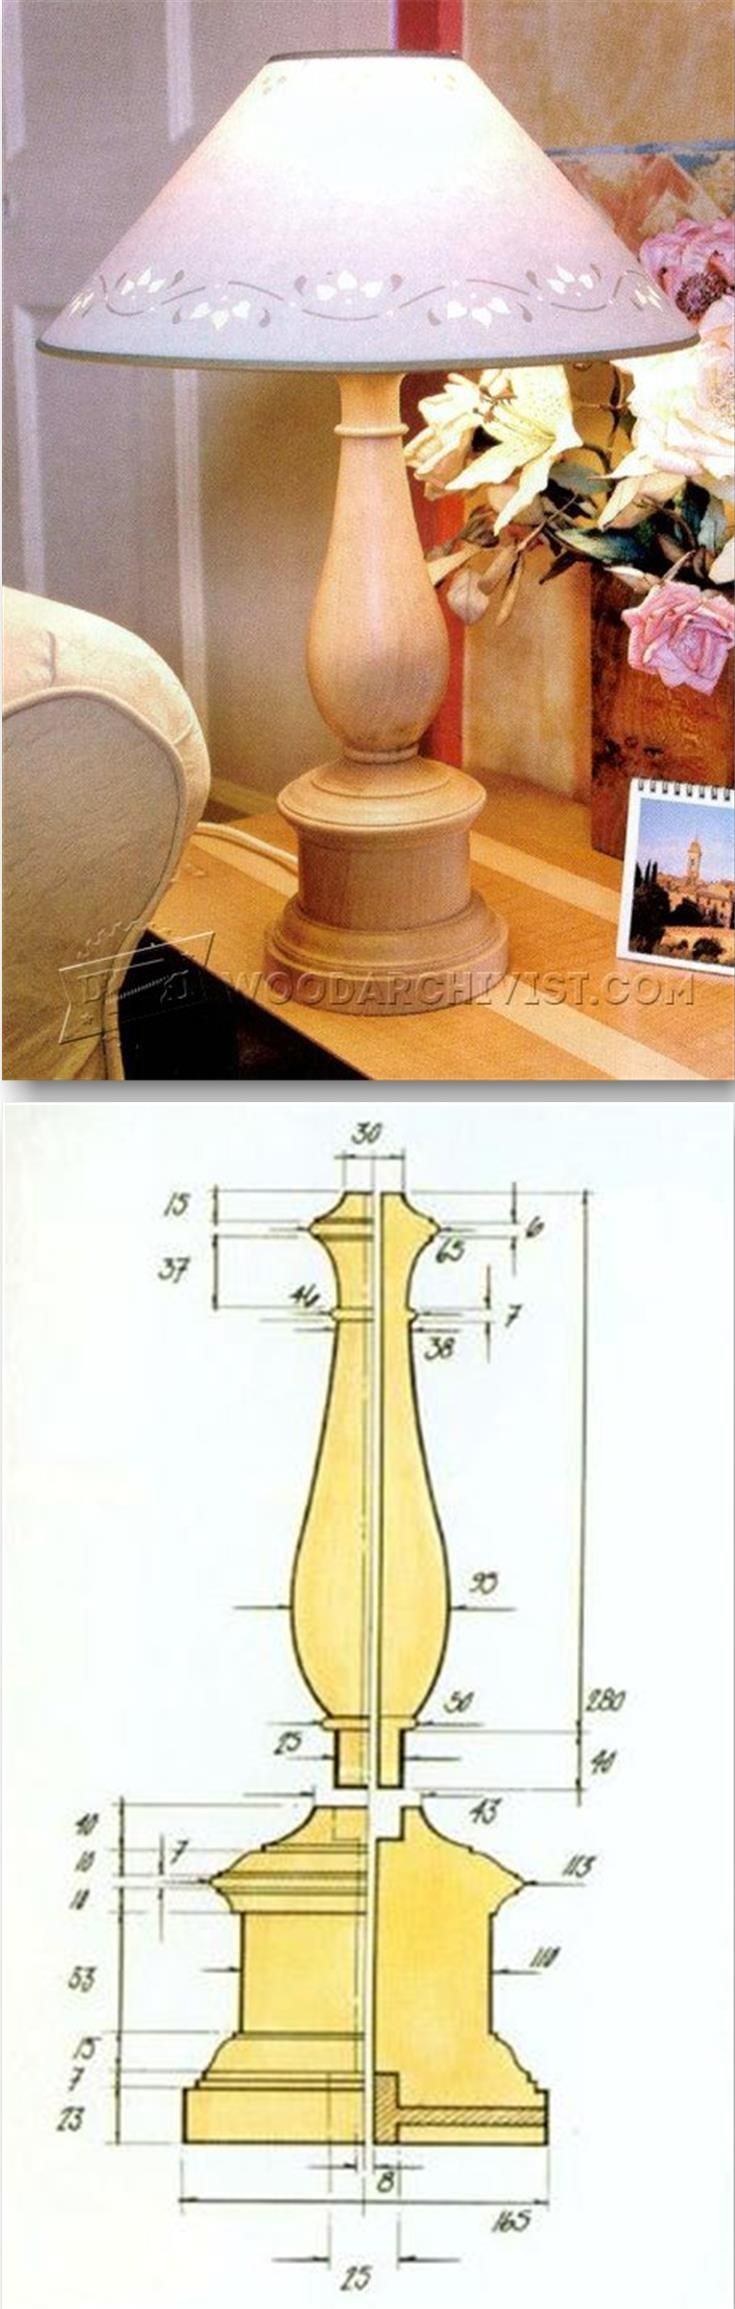 Woodturning Table Lamp - Woodturning Projects and Techniques | WoodArchivist.com